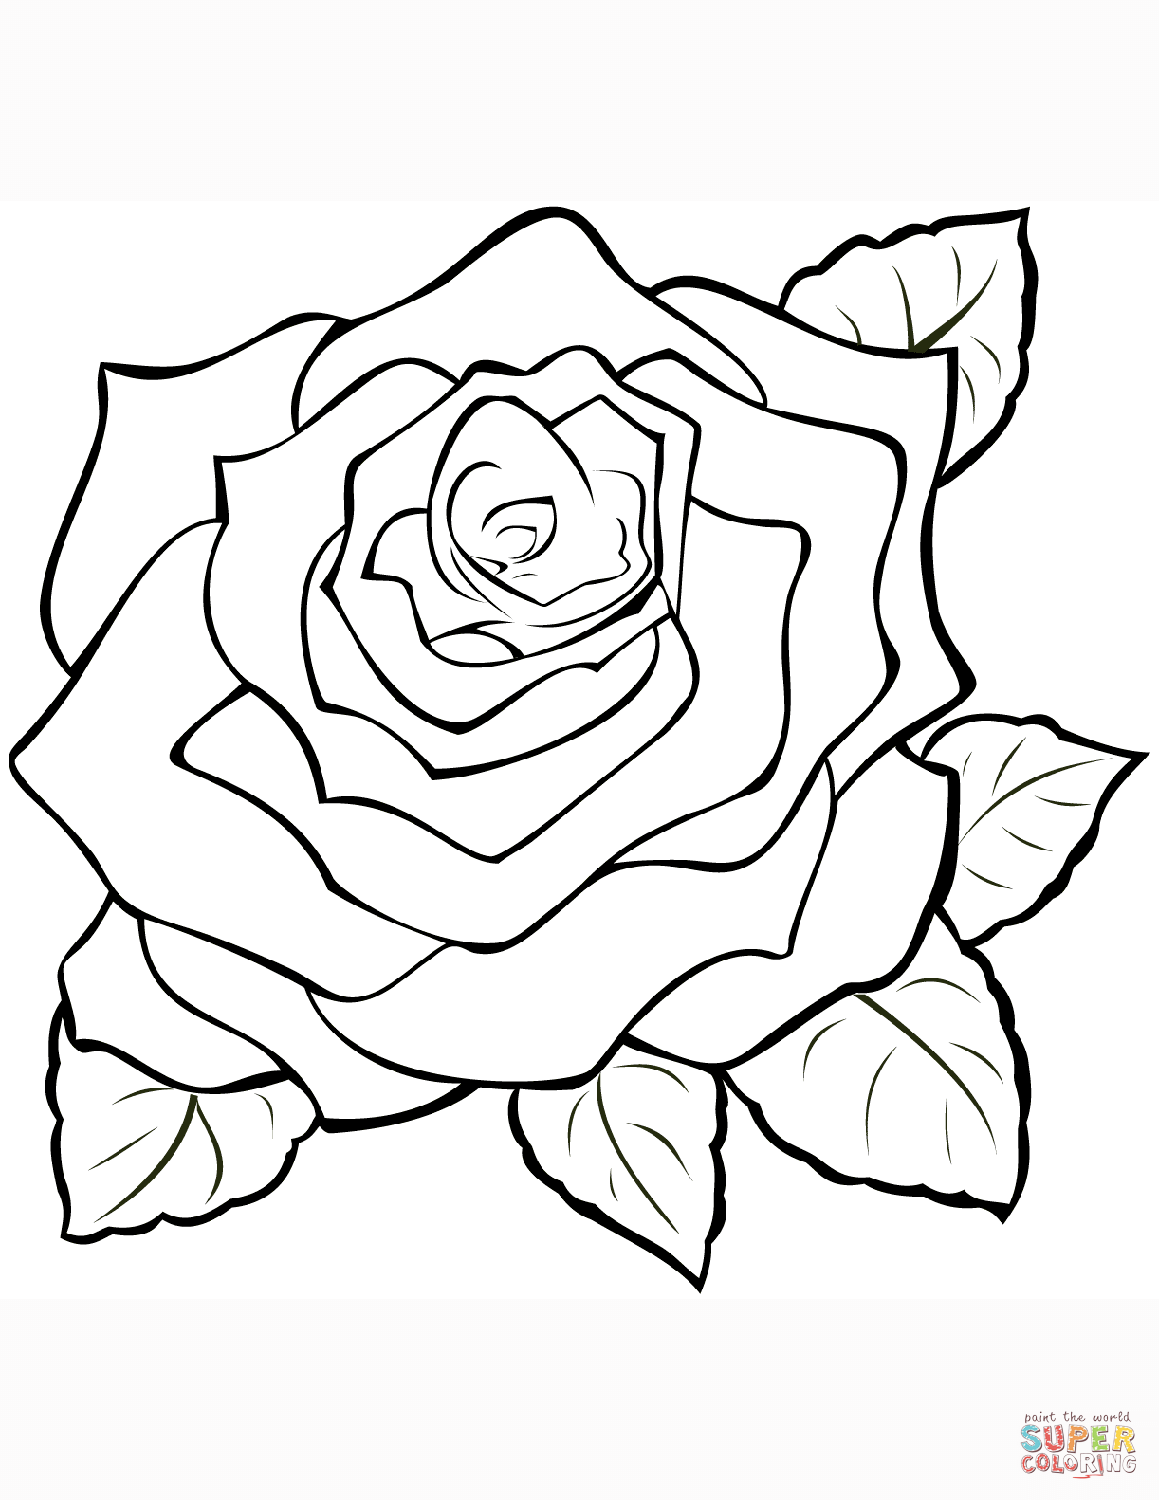 simple rose coloring pages flower page printable coloring sheets for the 85 x 11 coloring pages rose simple